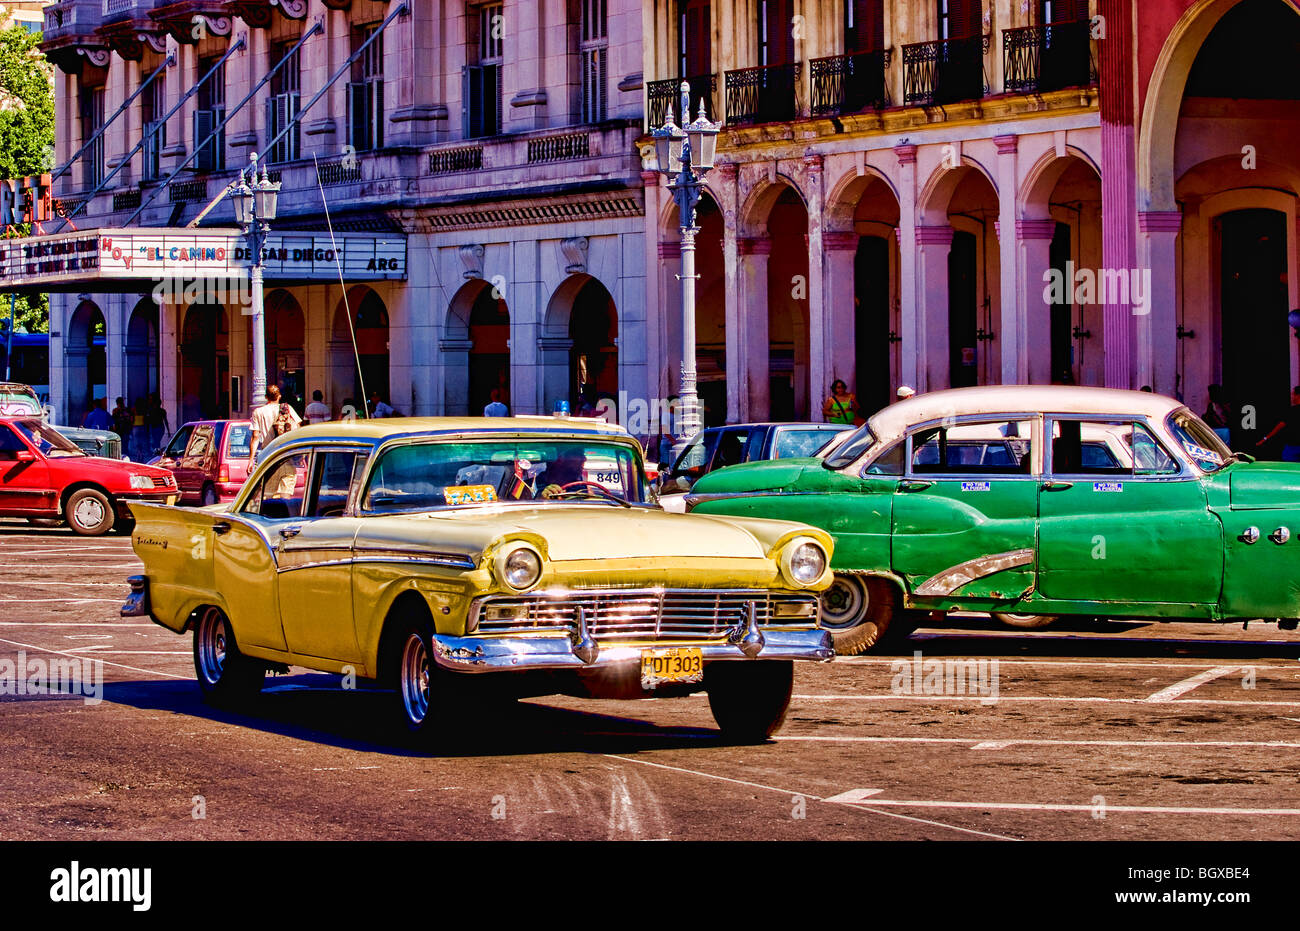 old american classic cars in central havana cuba near capitol showing stock photo 27624636 alamy. Black Bedroom Furniture Sets. Home Design Ideas